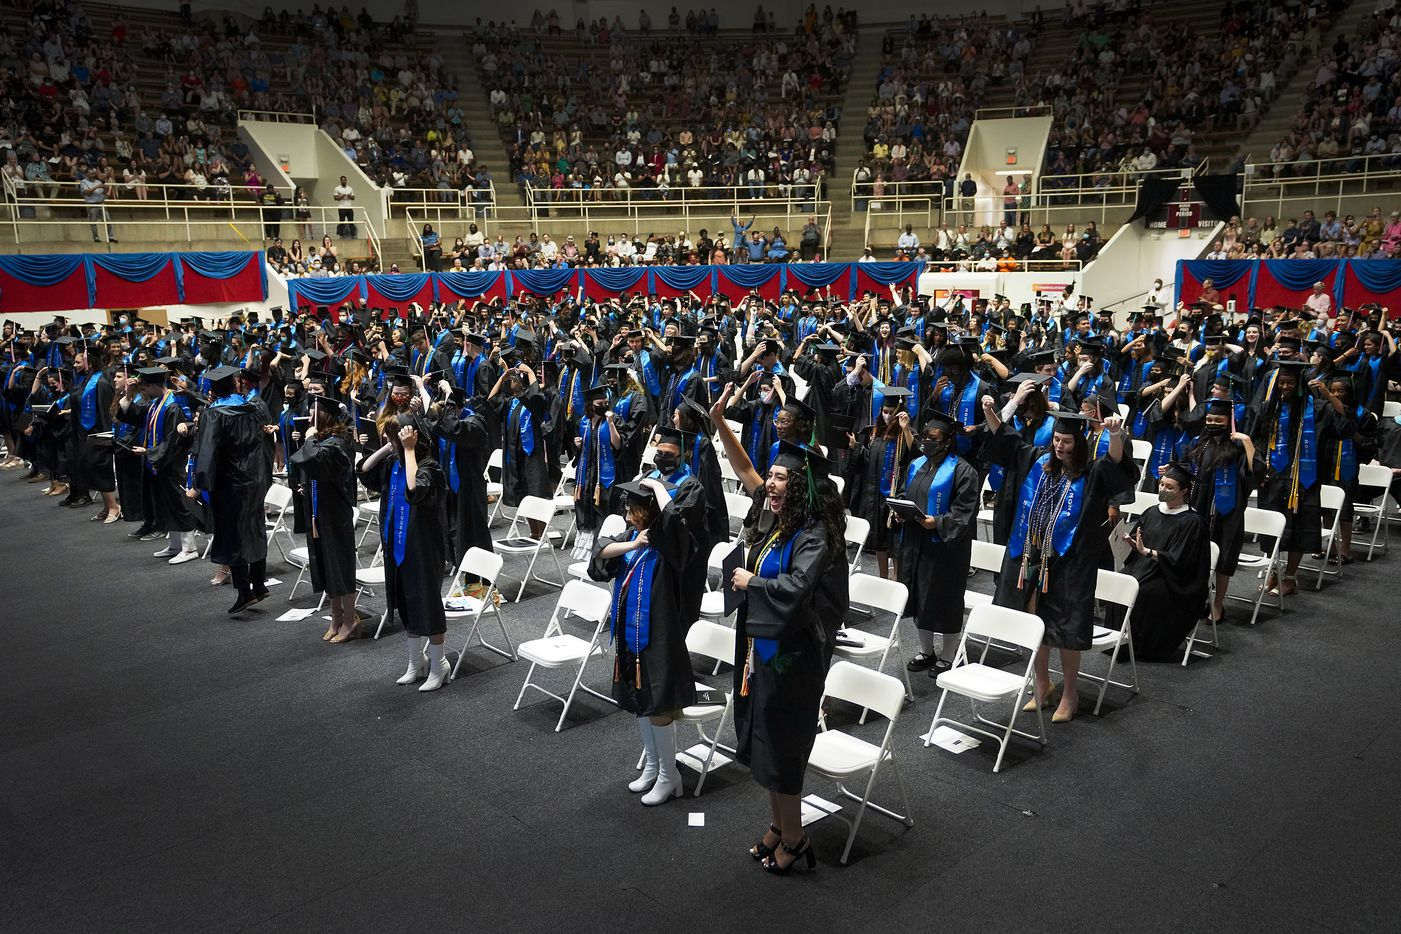 Graduates celebrate after the turning of the tassel during commencement ceremonies for Booker T. Washington HSPVA at Loos Field House on Saturday, June 19, 2021.